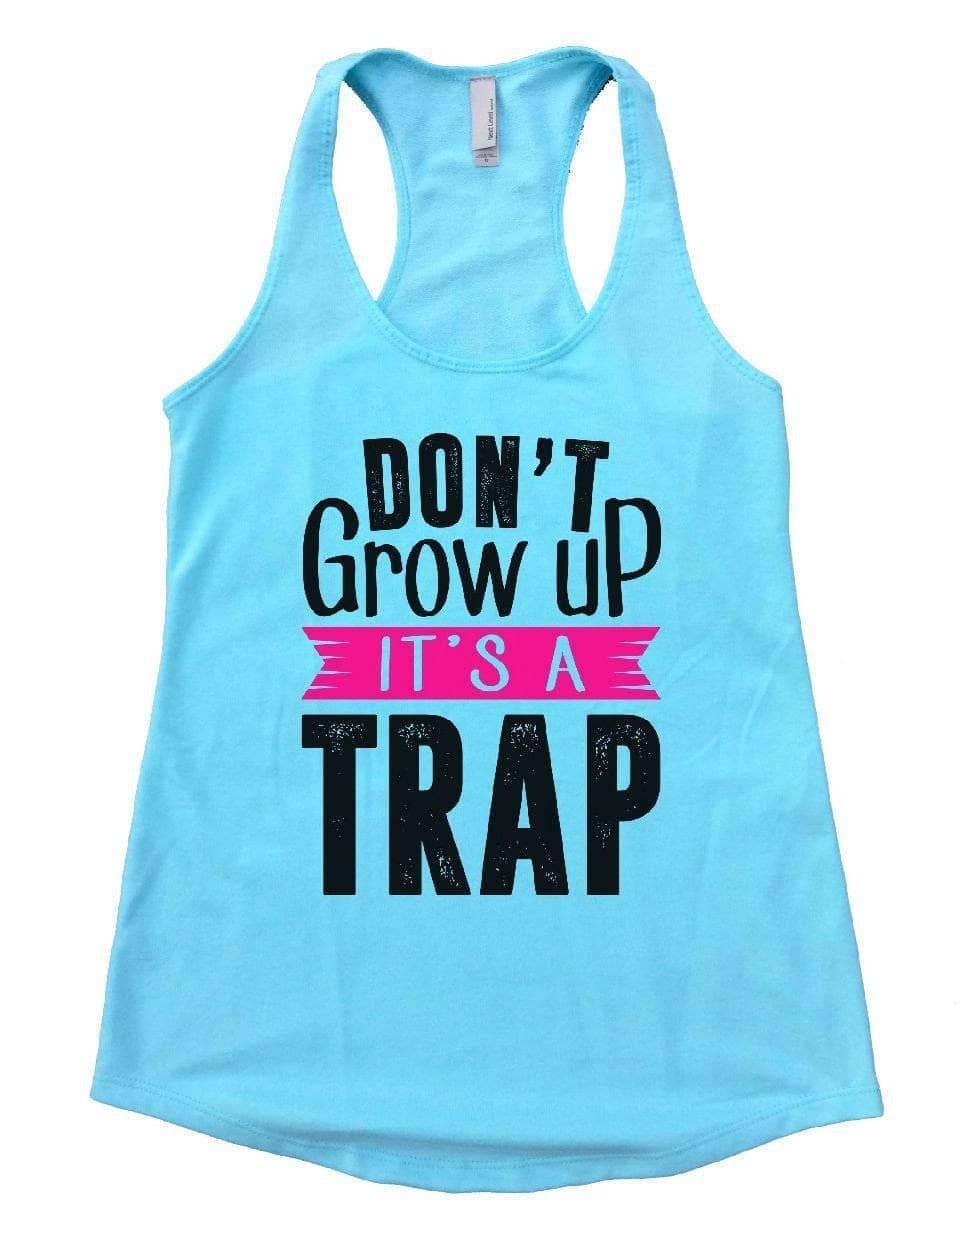 DON'T Grow Up IT'S A TRAP Womens Workout Tank Top Small Womens Tank Tops Cancun Blue